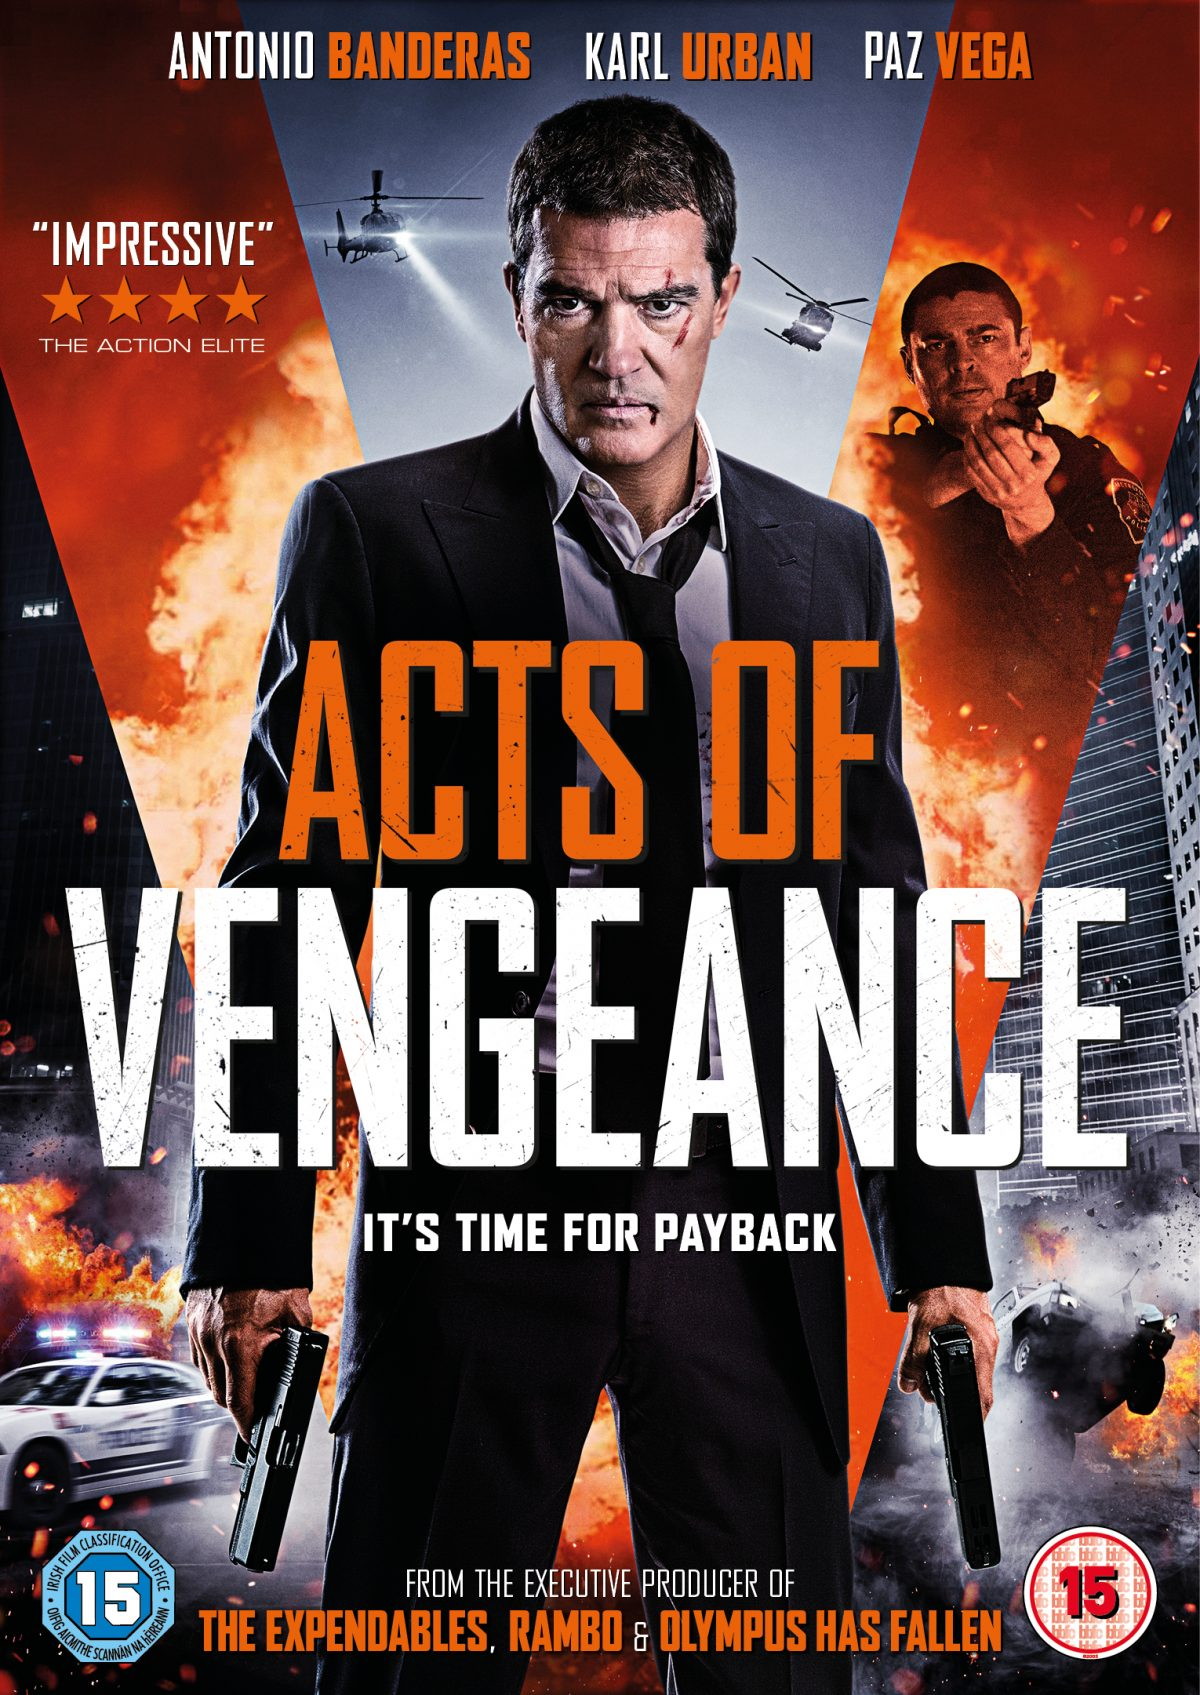 From the producers of The Expendables 1 and 2, Rambo, Olympus Has Fallen and London Has Fallen, comes Acts of Vengeance - an edge of your seat action thriller starring Antonio Banderas and Karl Urban.